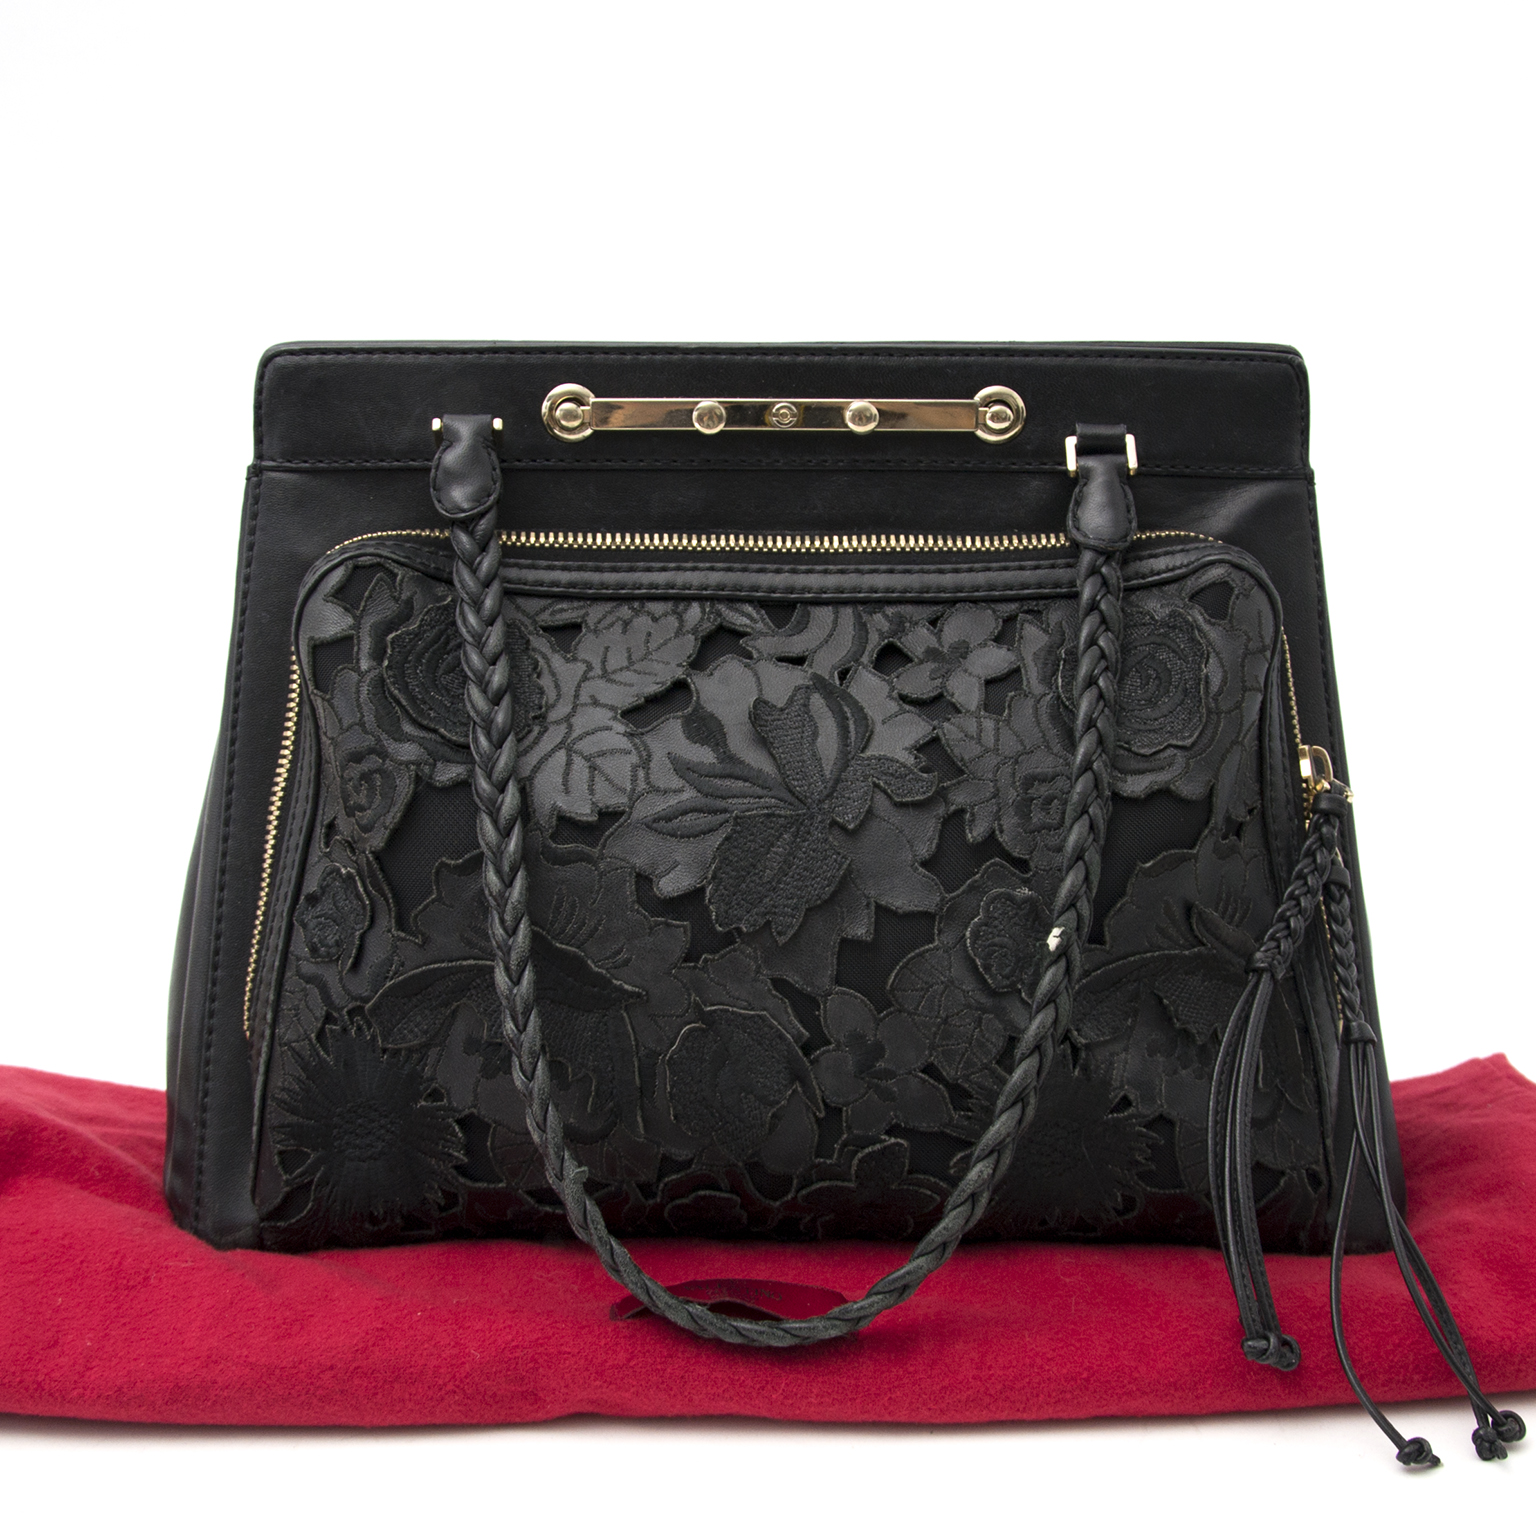 9c49795d0189 ... Buy and sell your preloved designer bags for the best rates online at  Labellov luxury